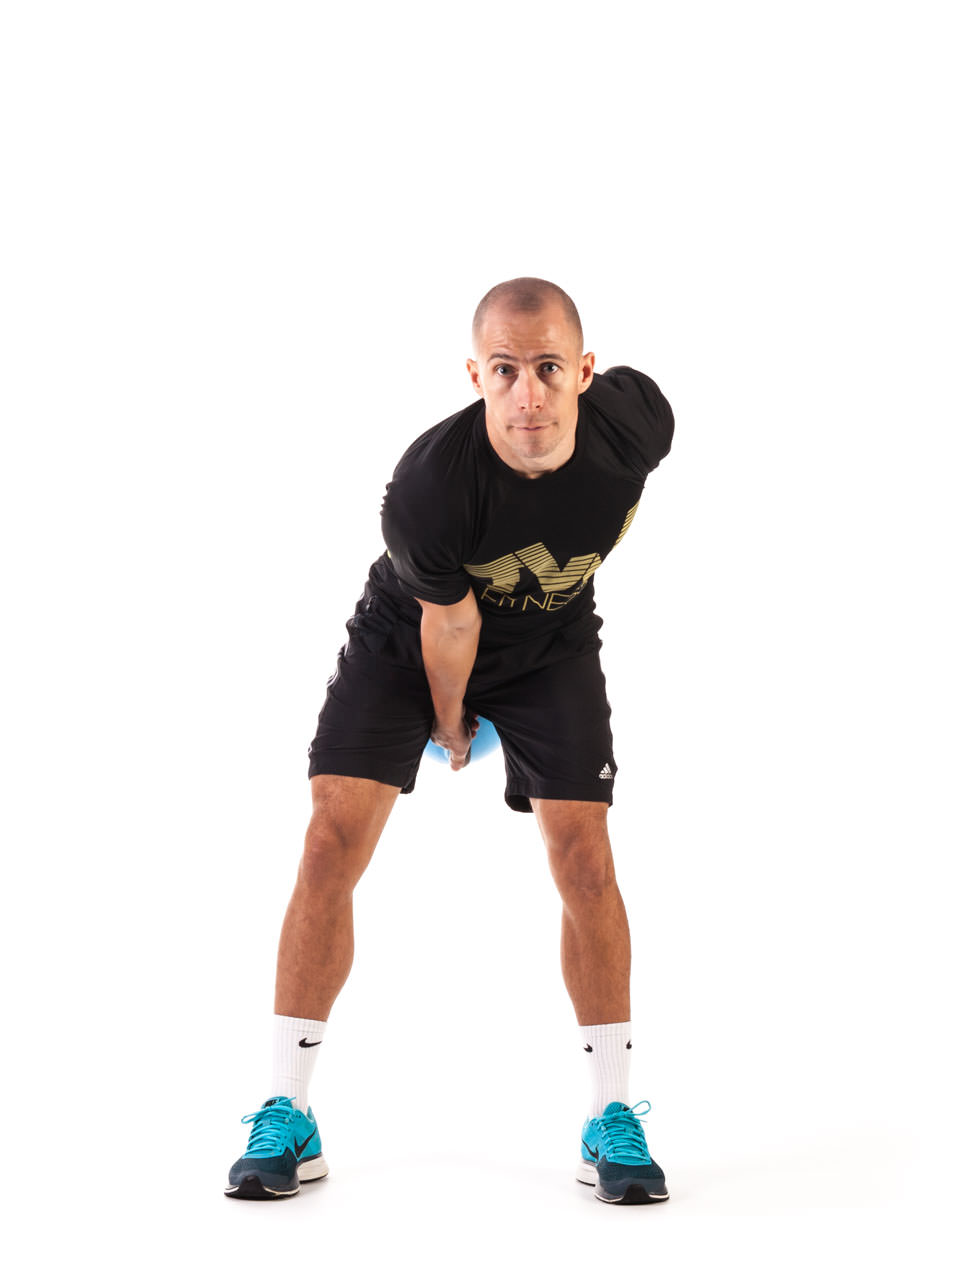 One-Arm Kettlebell Swing frame #2